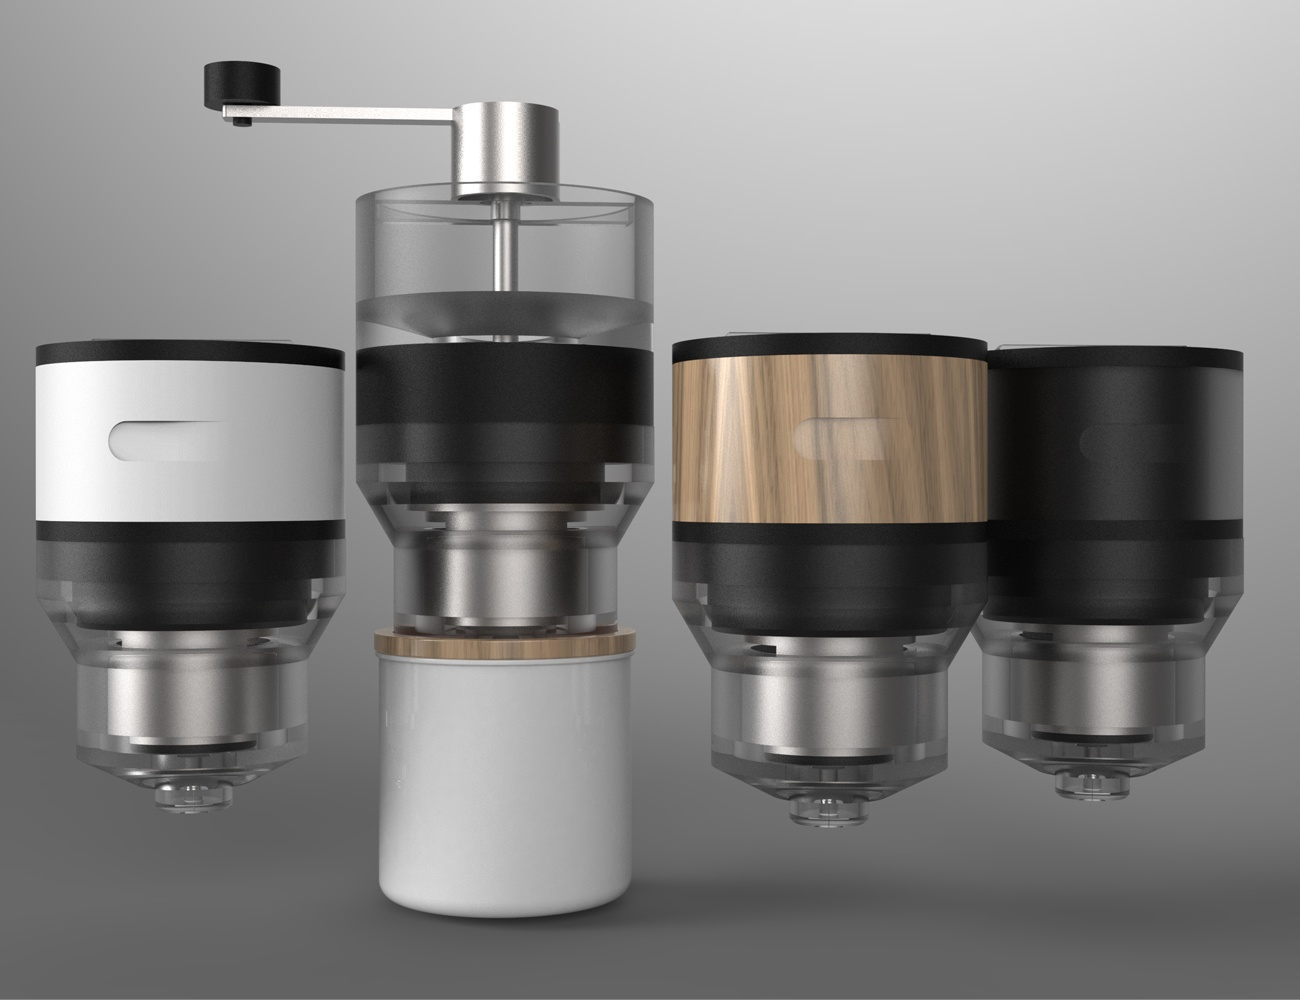 FUSE Modular Coffee Press 05 Coffee Maker With Grinder And Frother